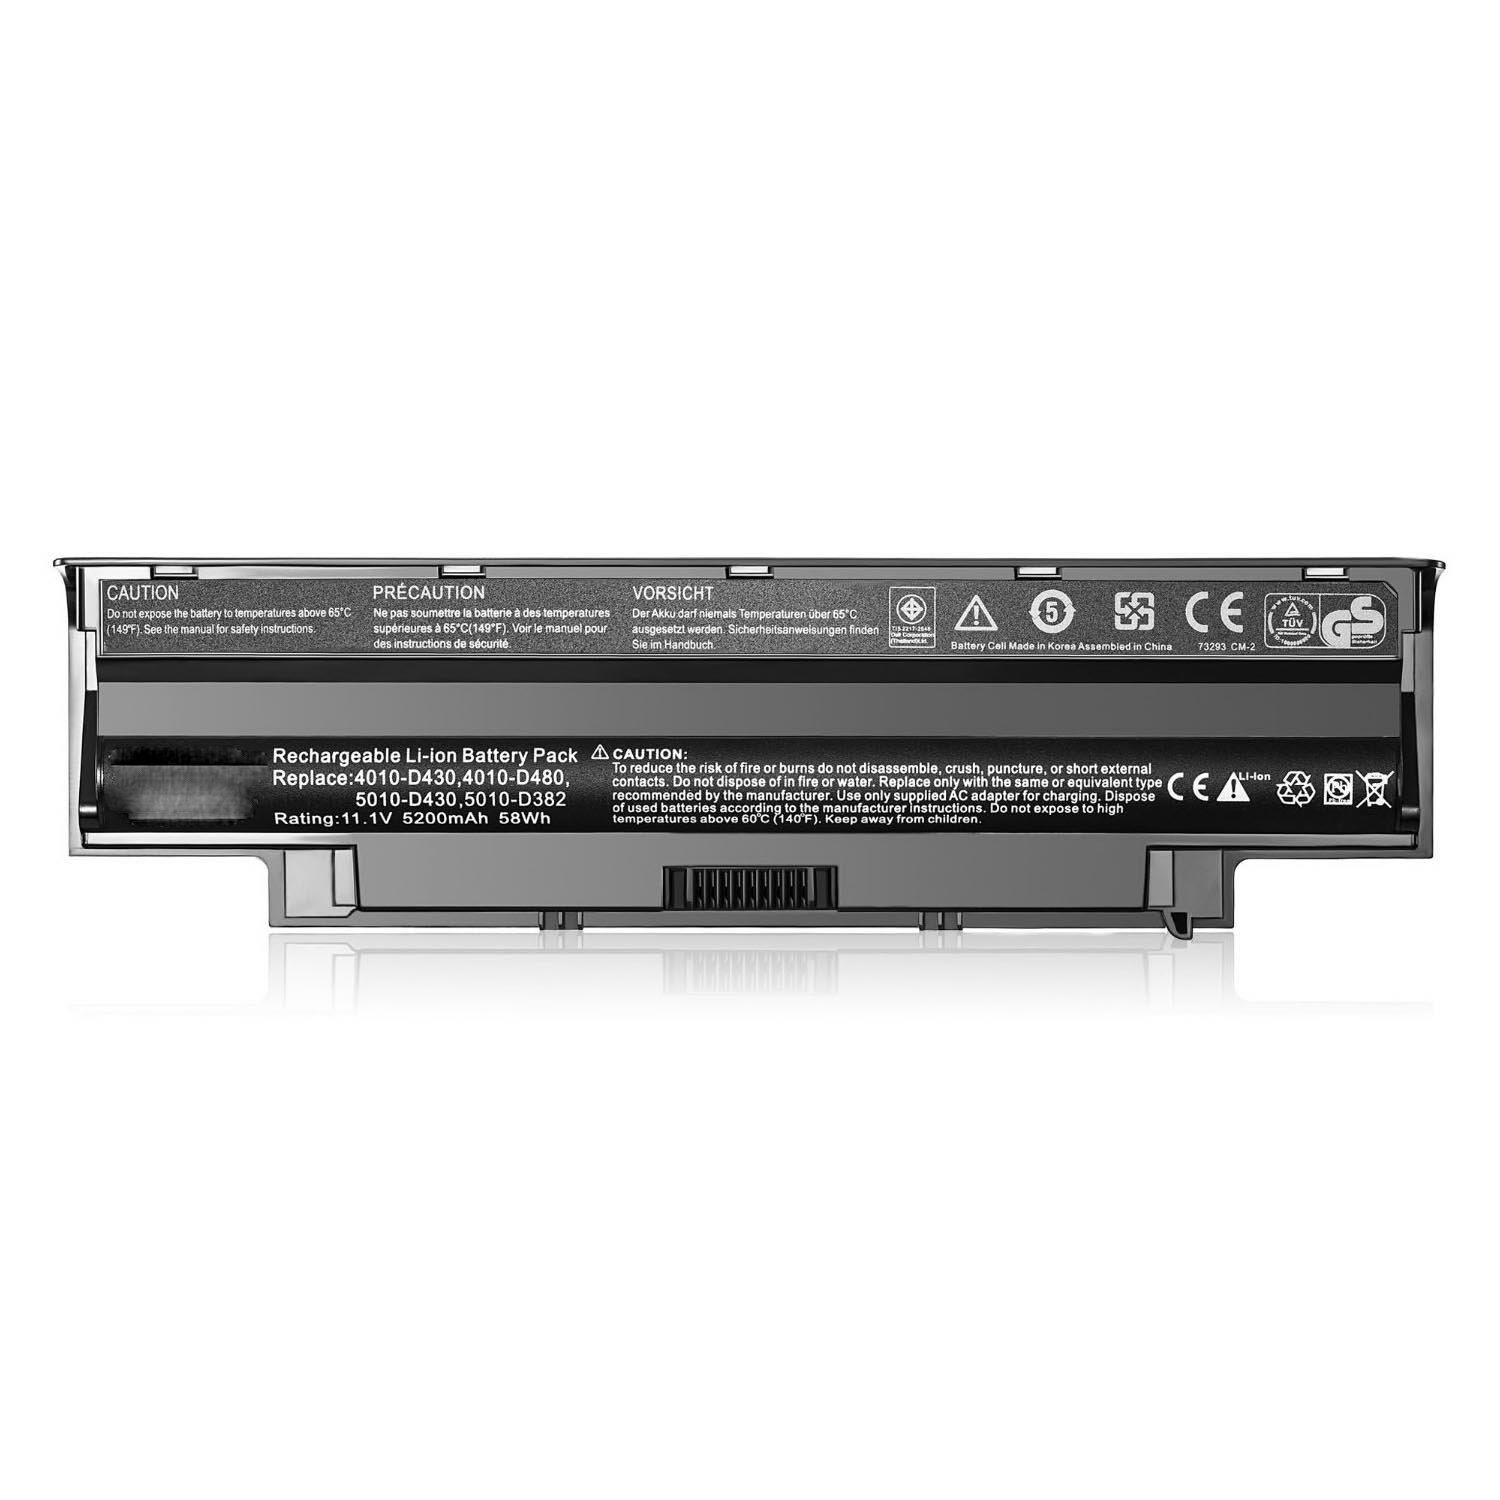 Echo srm 140 manual ebook array e one laptop battery for dell inspiron j1knd 14r 4010 n4010 rh fandeluxe Choice Image